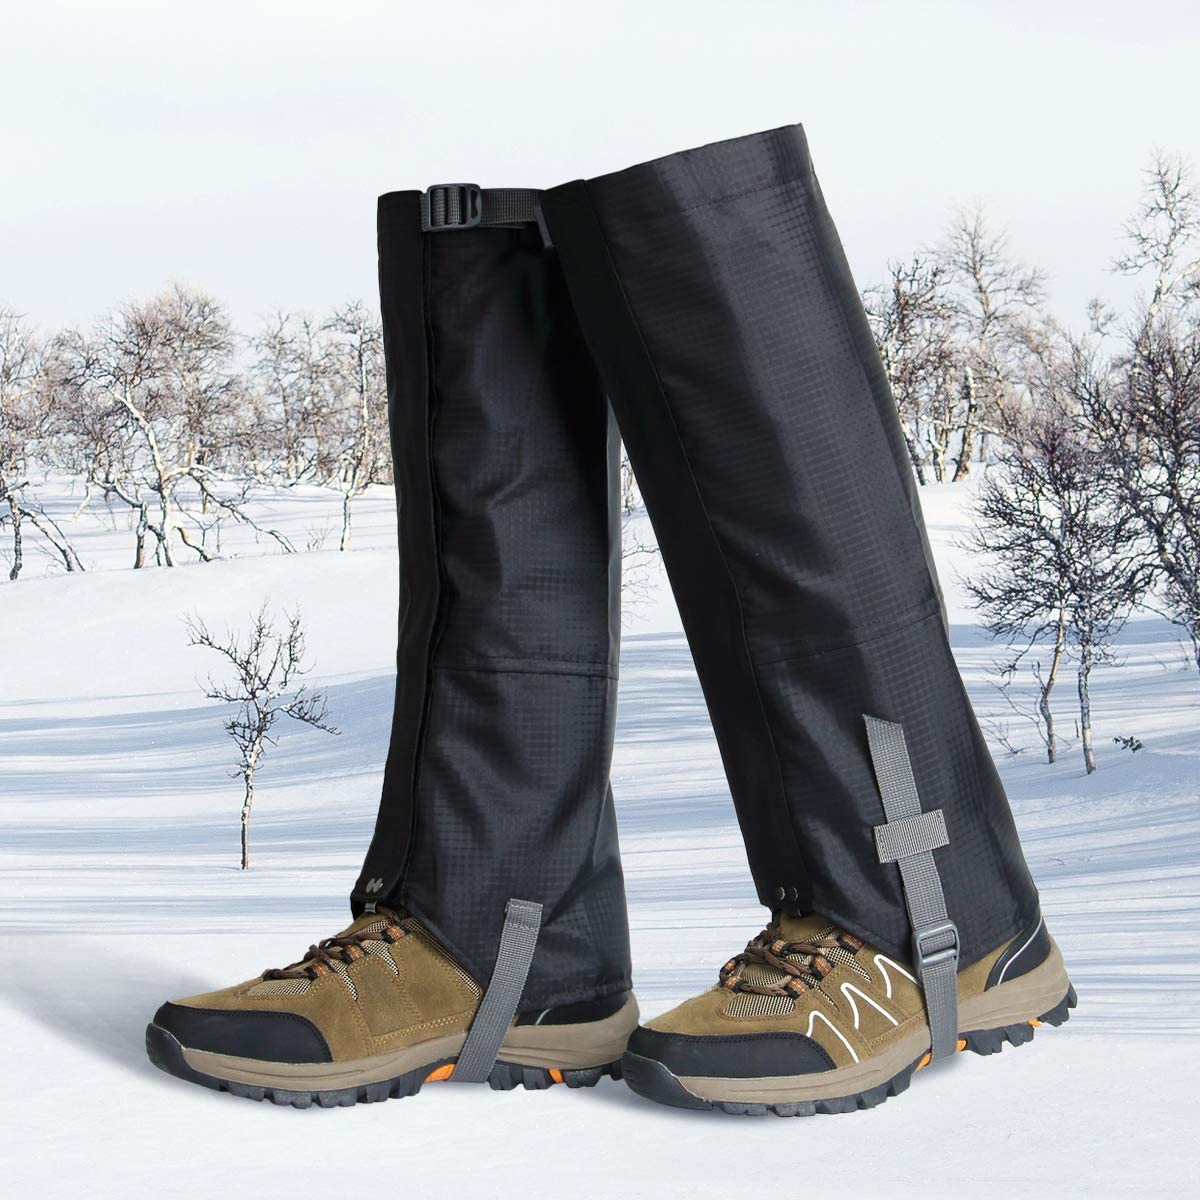 Tunity Leg Gaiters Waterproof Snow Gaiter Shoes Gaiters 600D Anti-Tear Oxford Cloth for Outdoor Hiking Walking Climbing Hunting